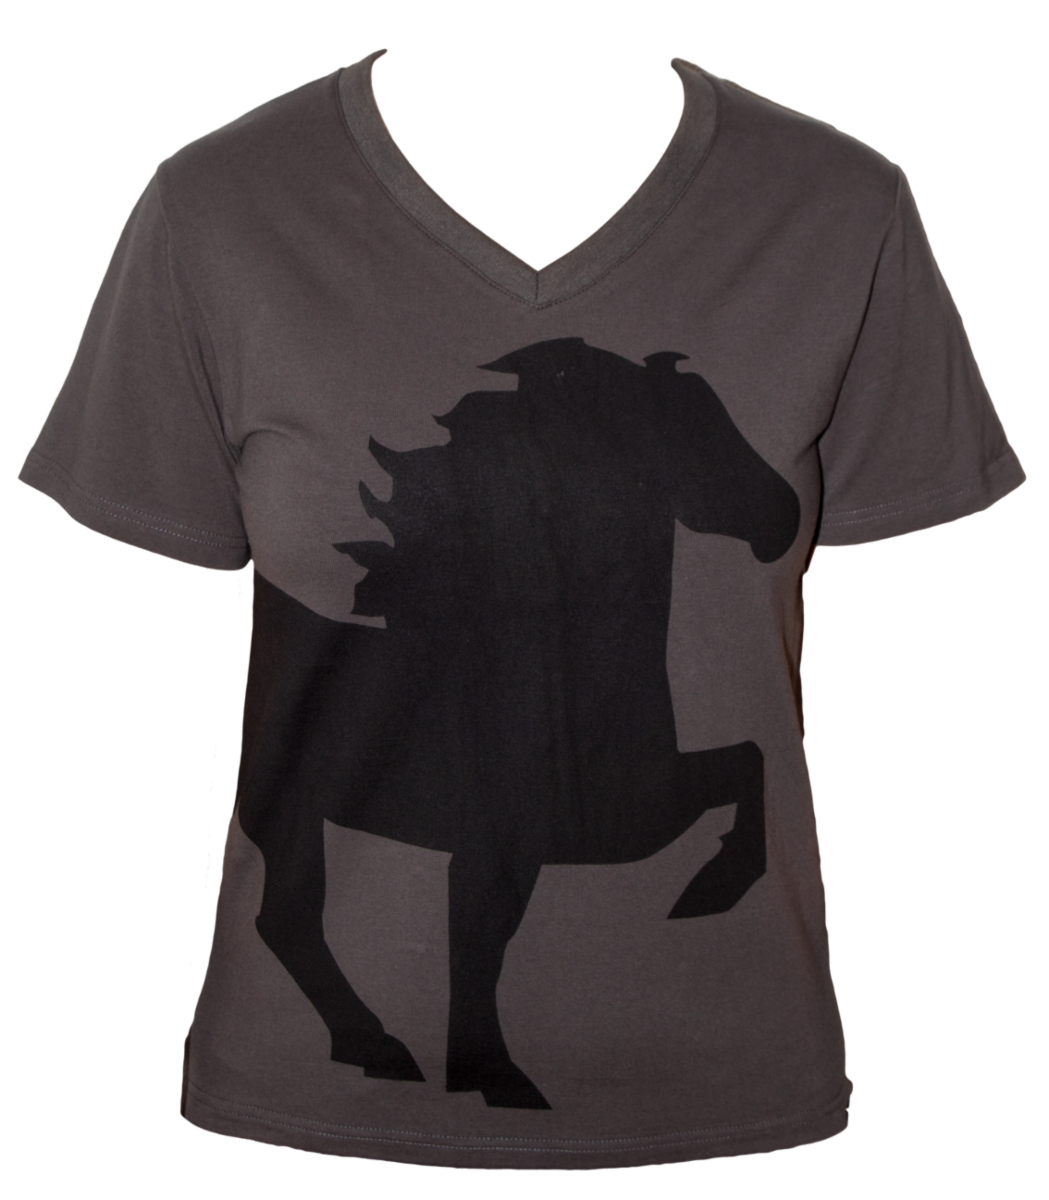 T-shirt w. horse and V-neck